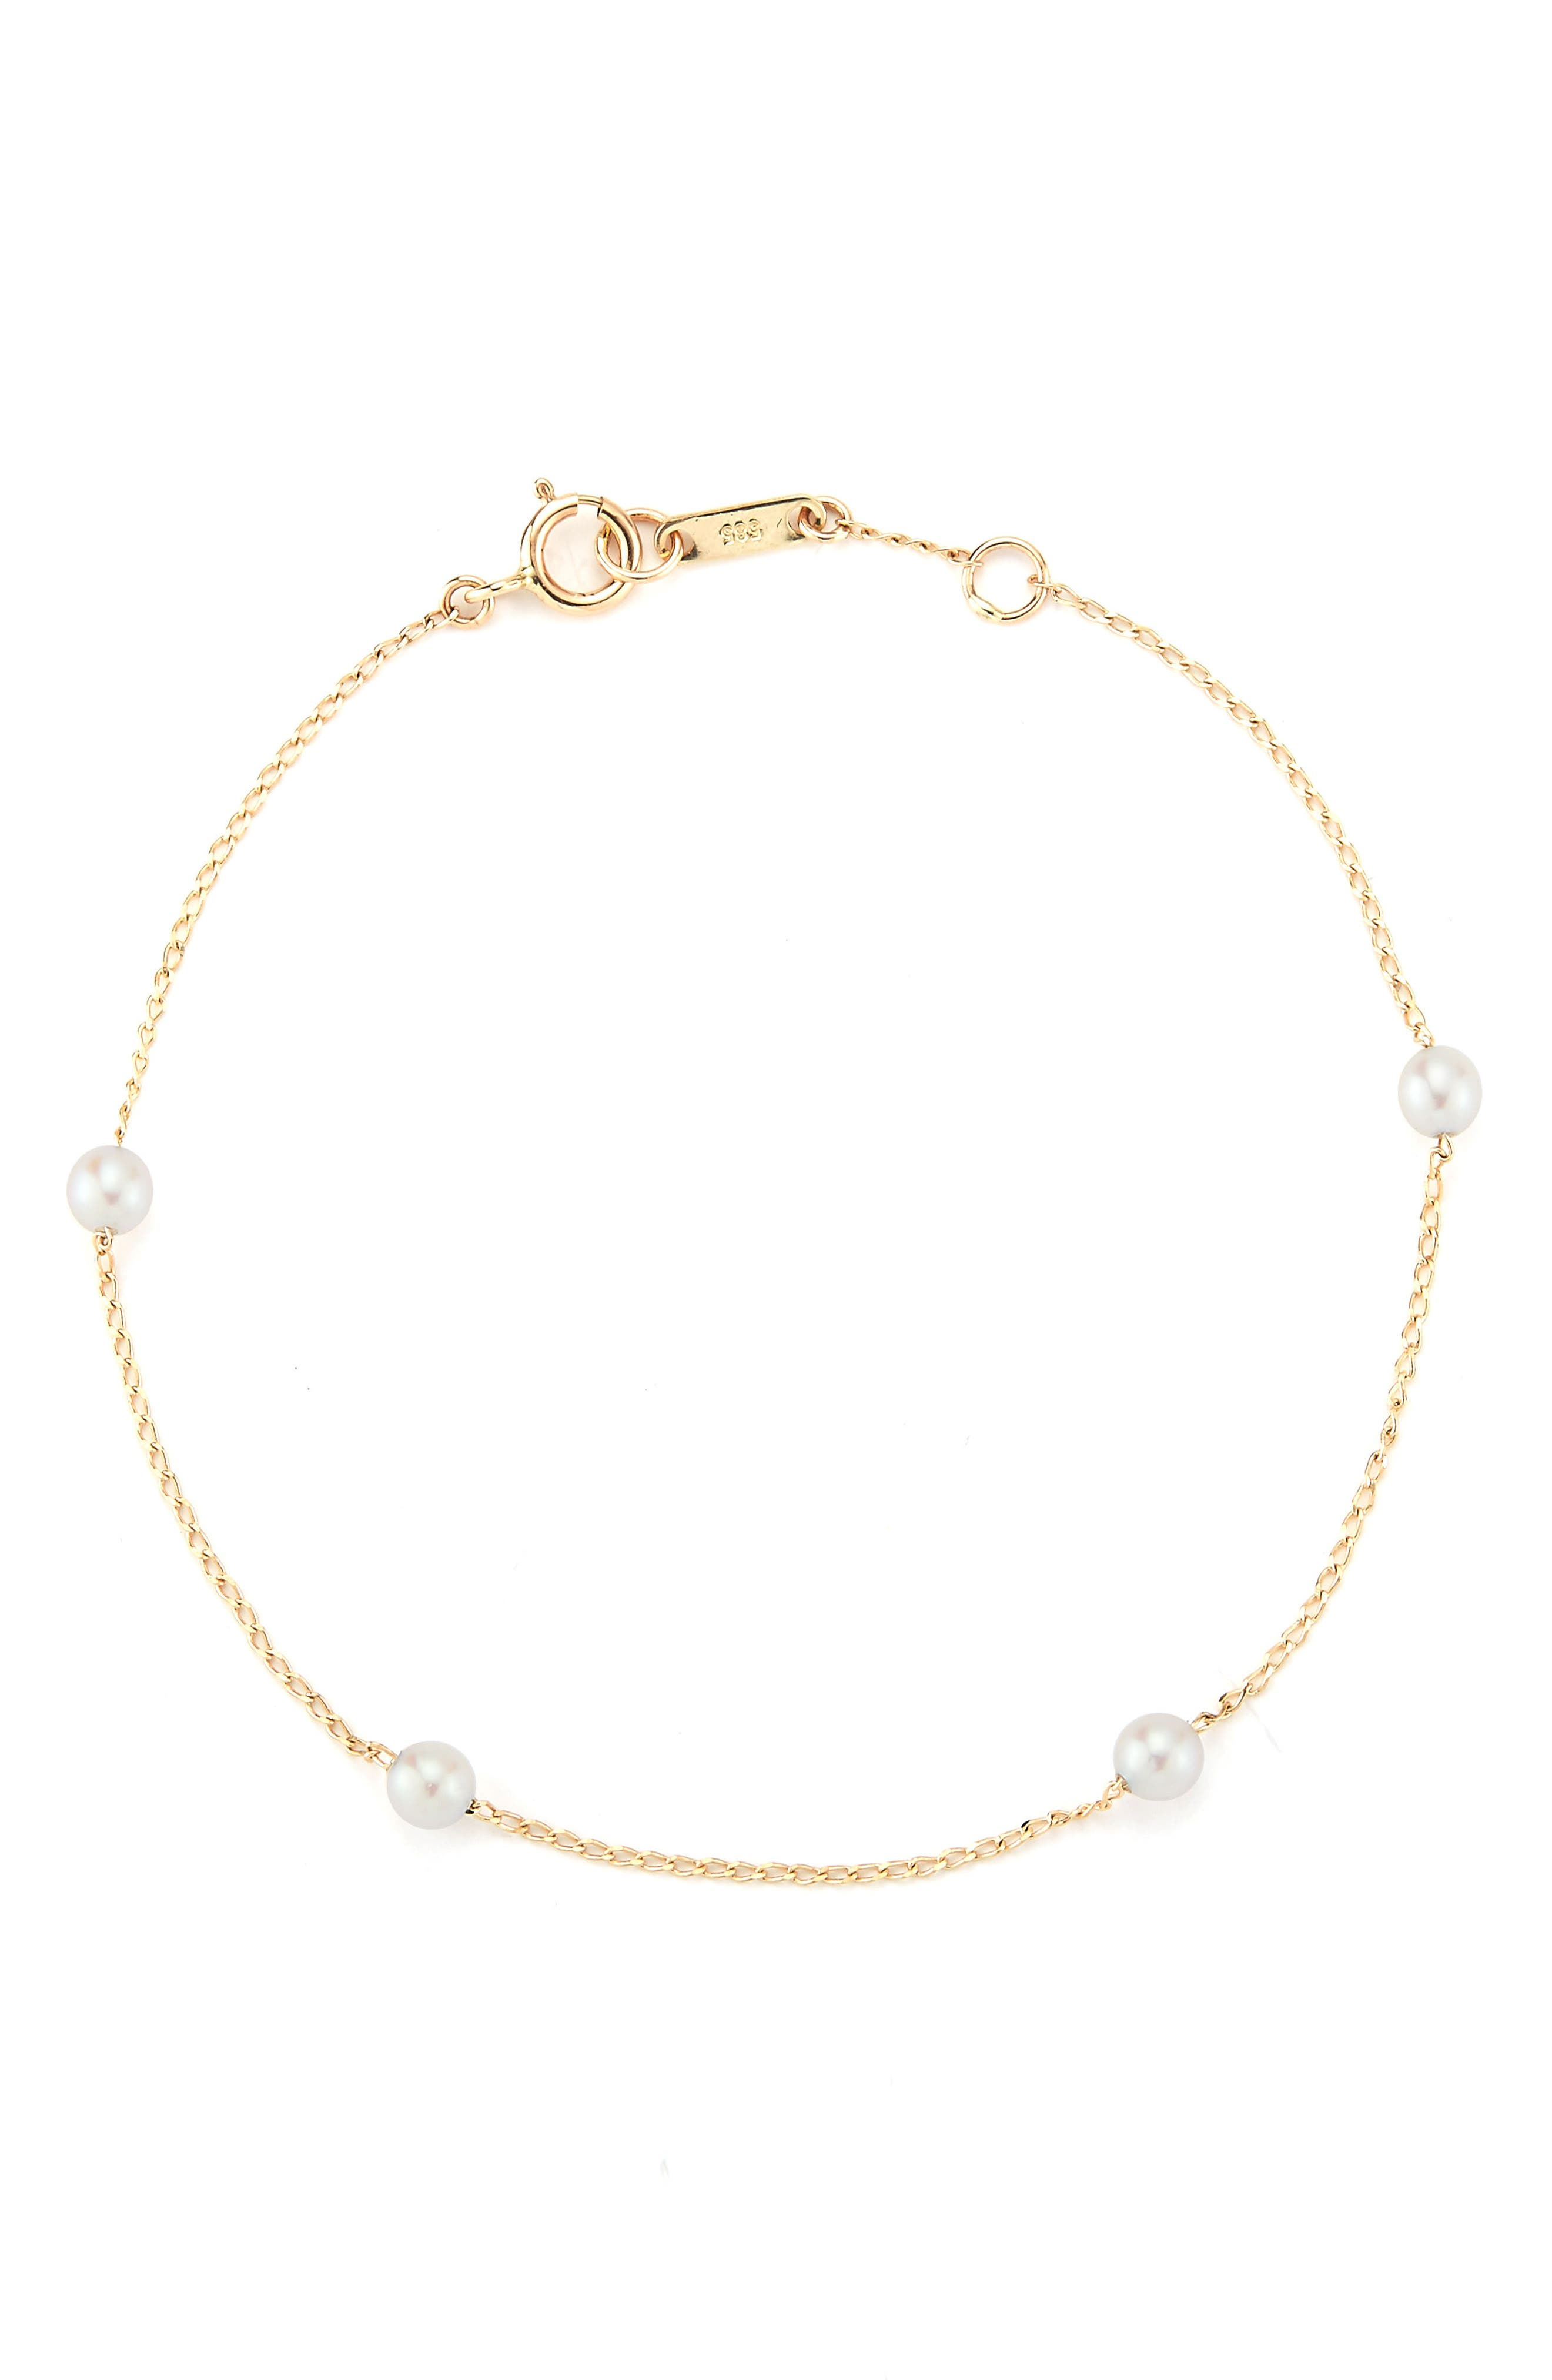 Four-Pearl Station Bracelet,                             Main thumbnail 1, color,                             Yellow Gold/ Pearl